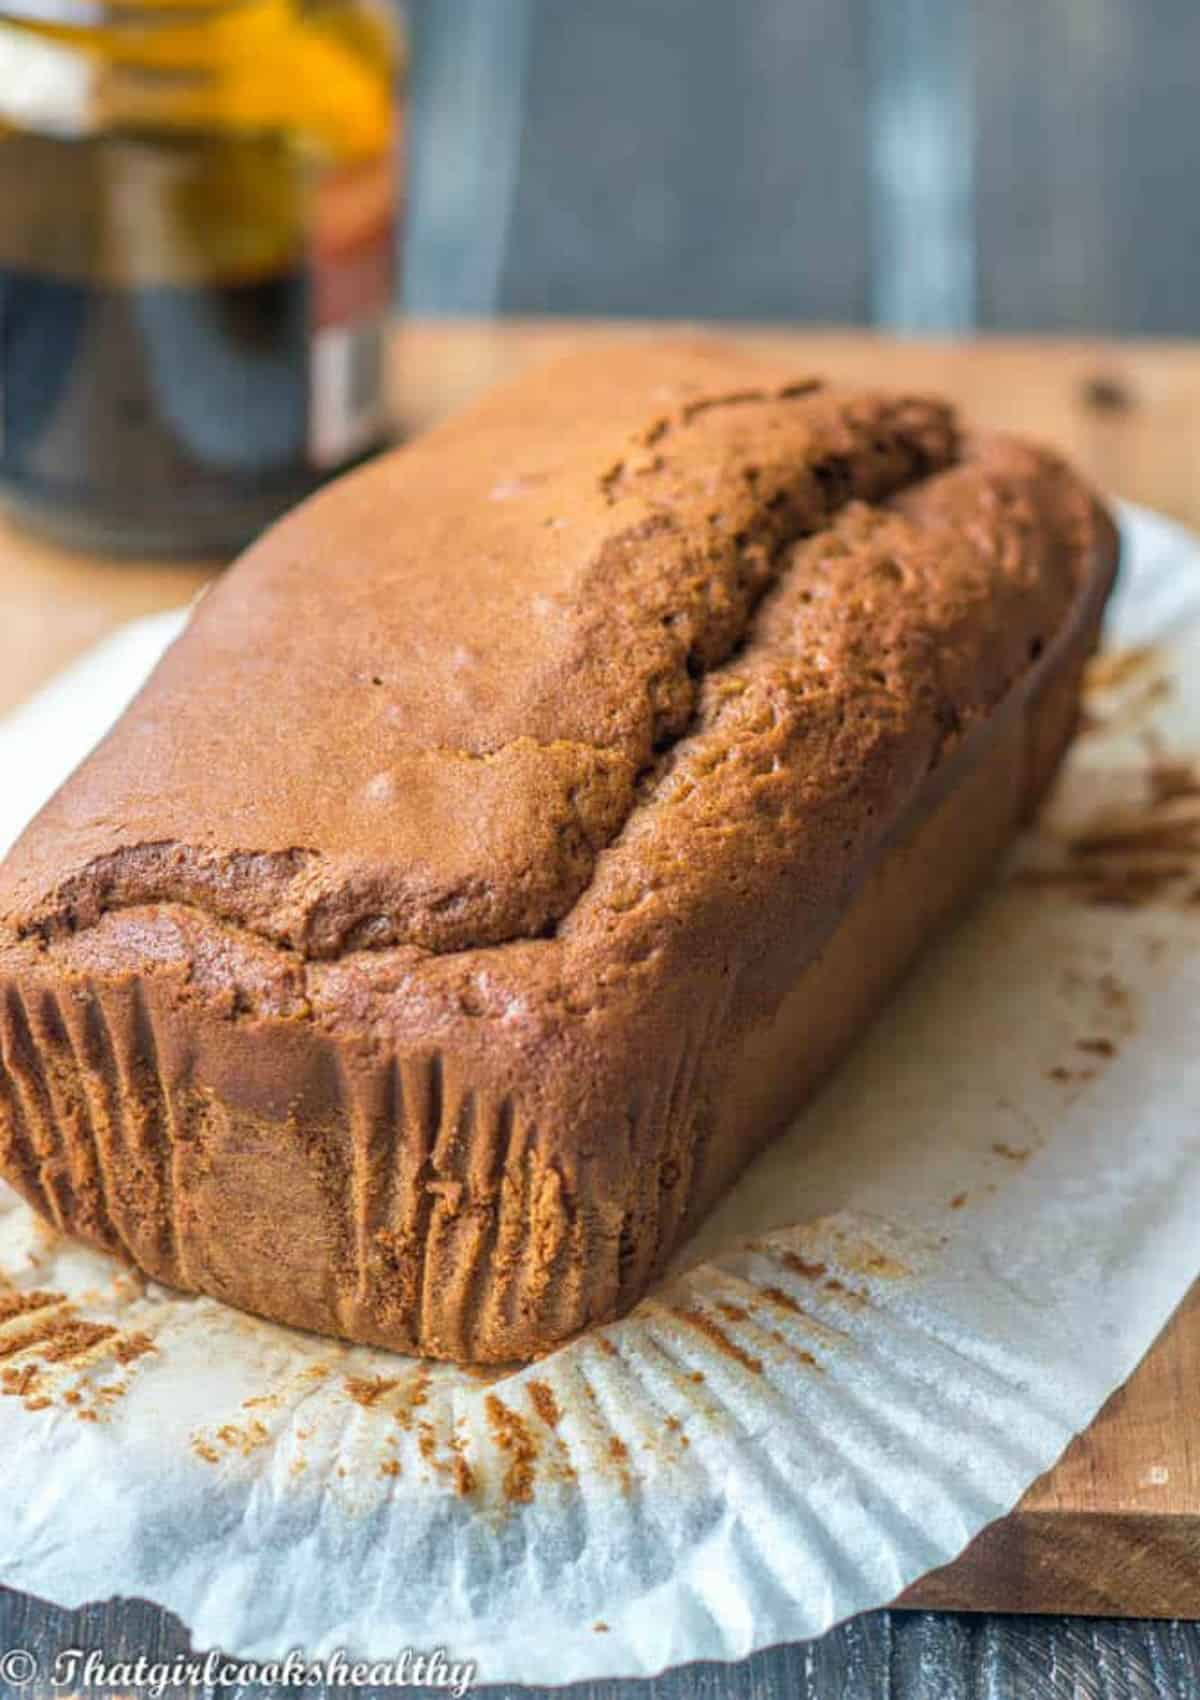 unsliced cake, liner removed with molasses